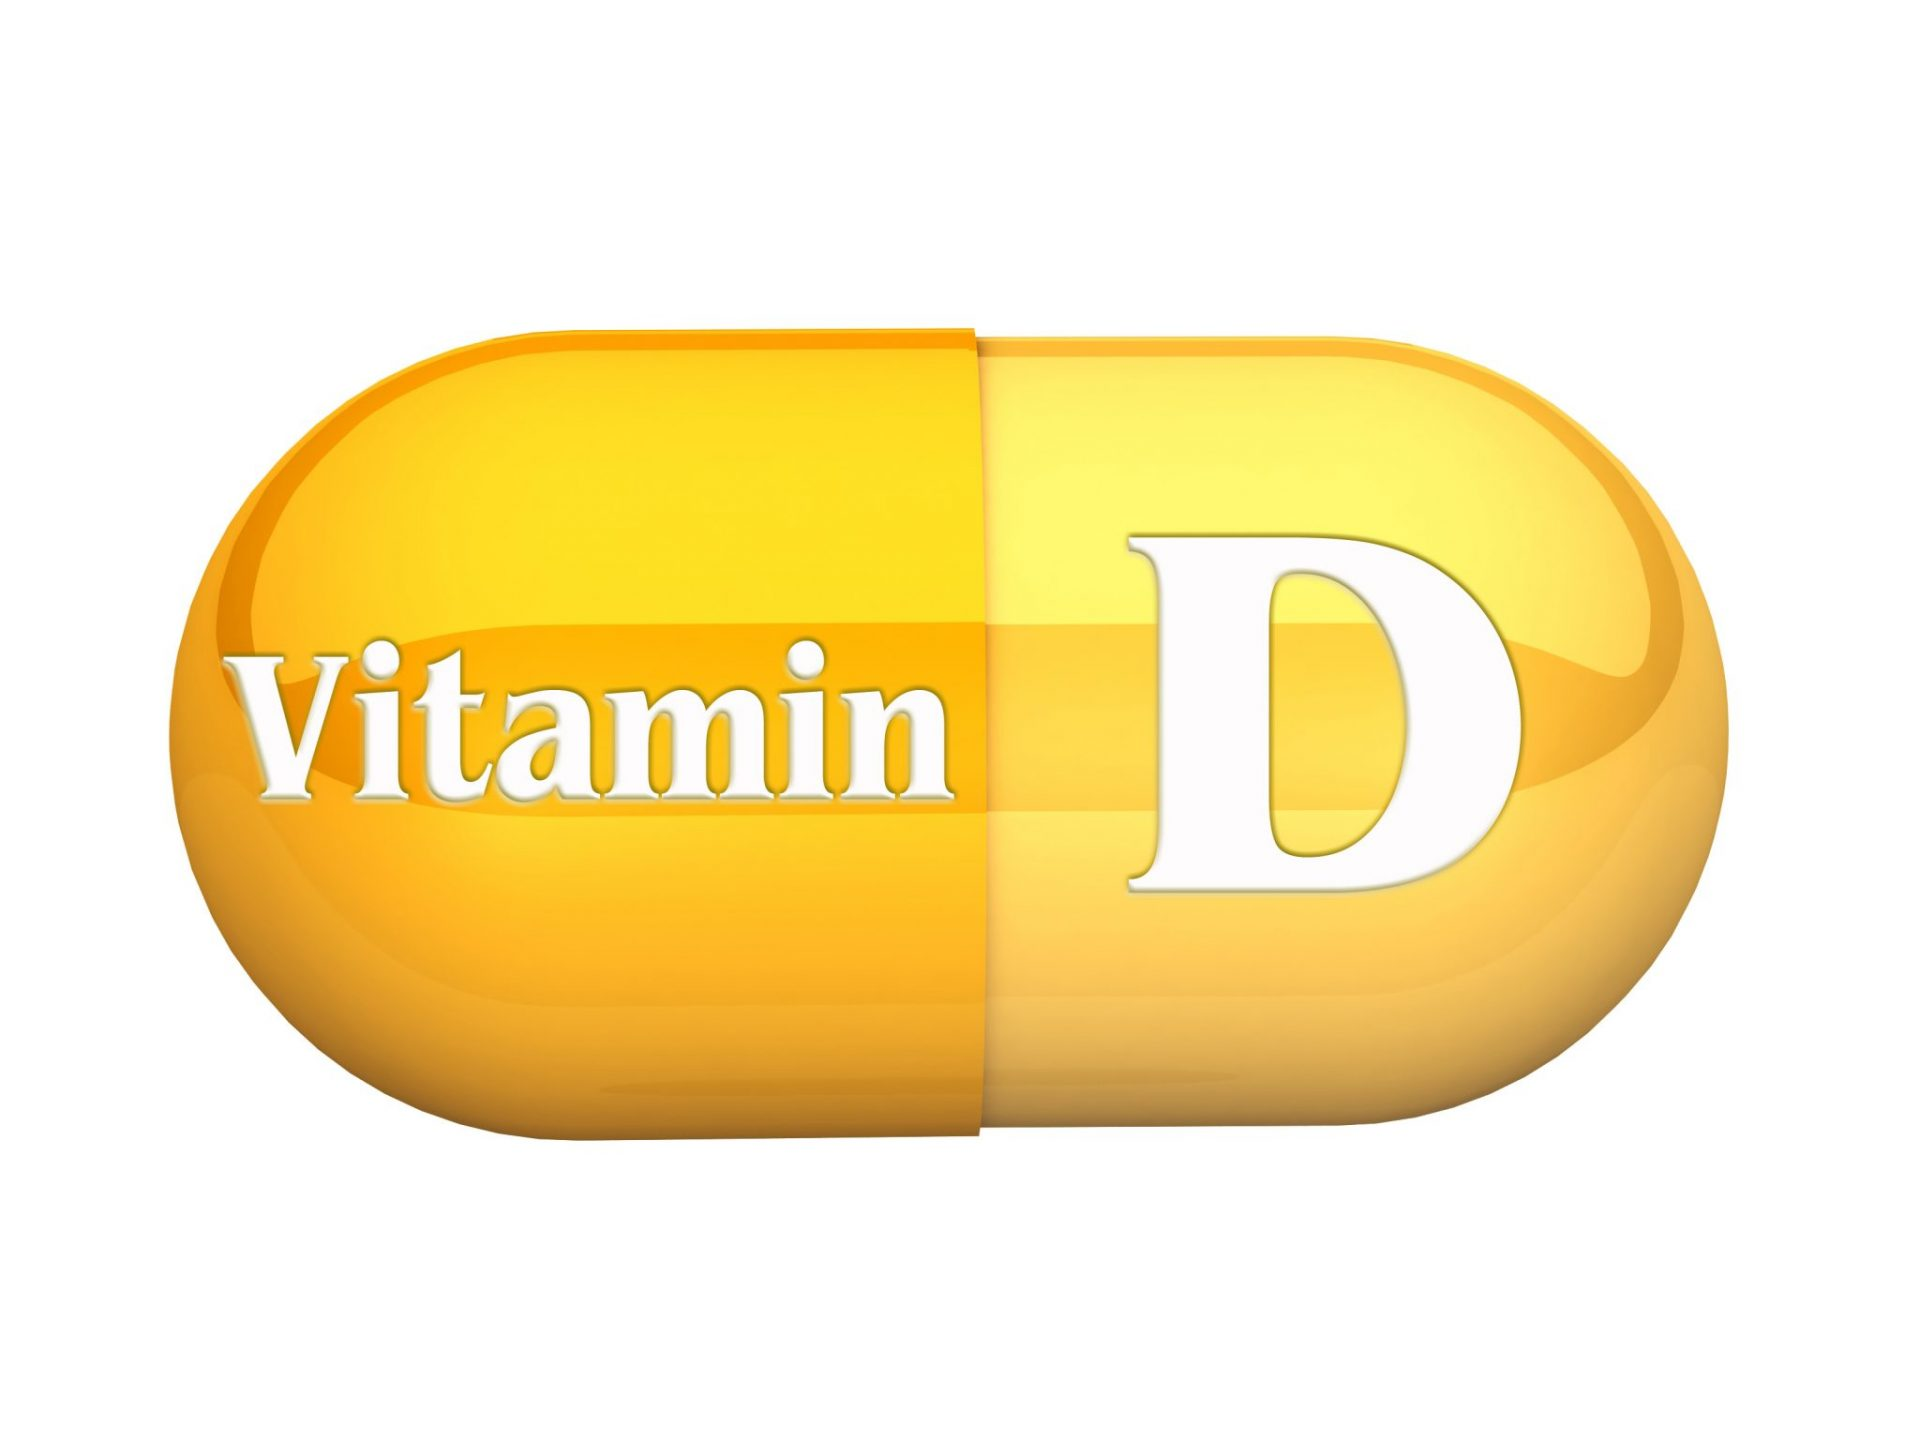 vitamin c research paper Over the past few years, vitamin c has been a topic of controversy there have been studies stating that vitamin c can help prevent many various health problems.